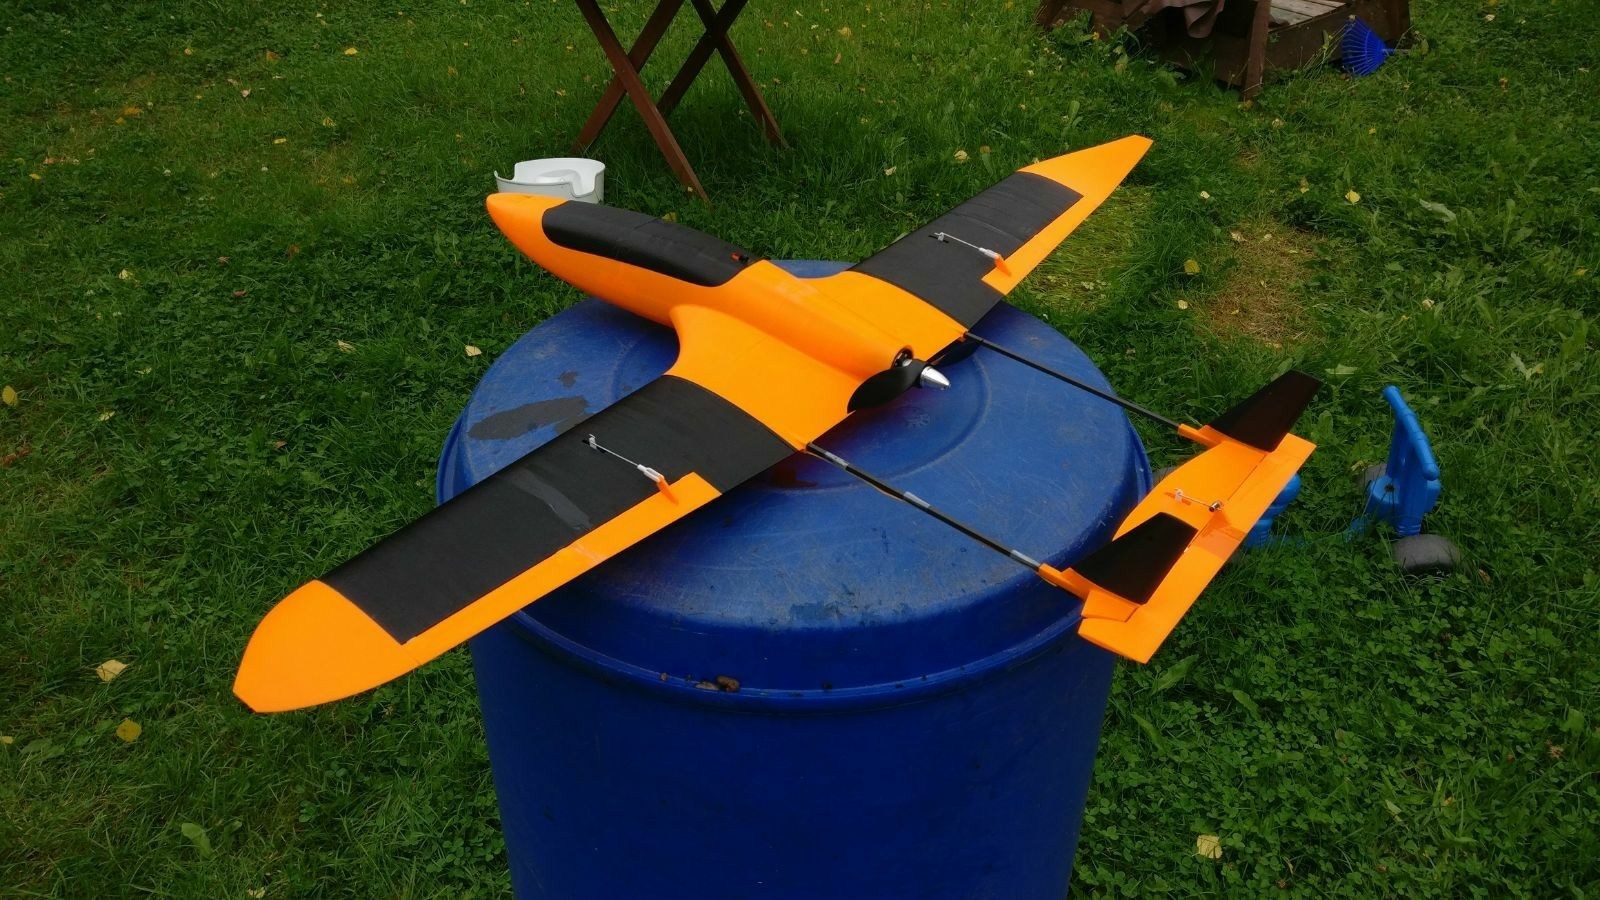 SW3 3D printed aircraft Model airplanes, Radio control